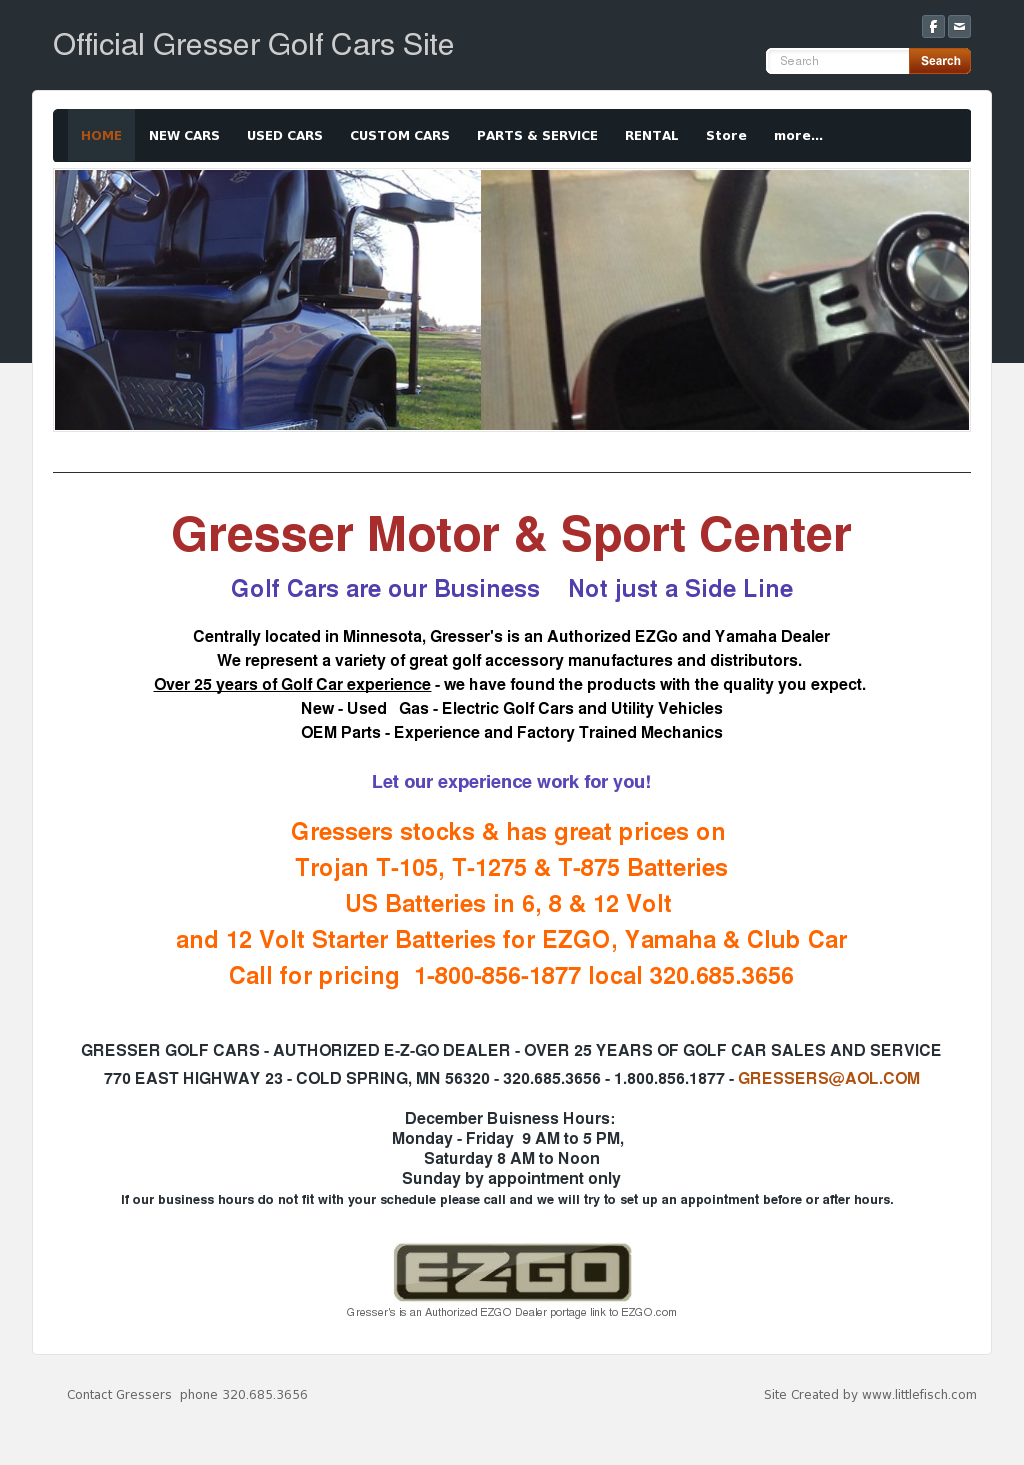 Gresser Golf Cart Competitors, Revenue and Employees - Owler